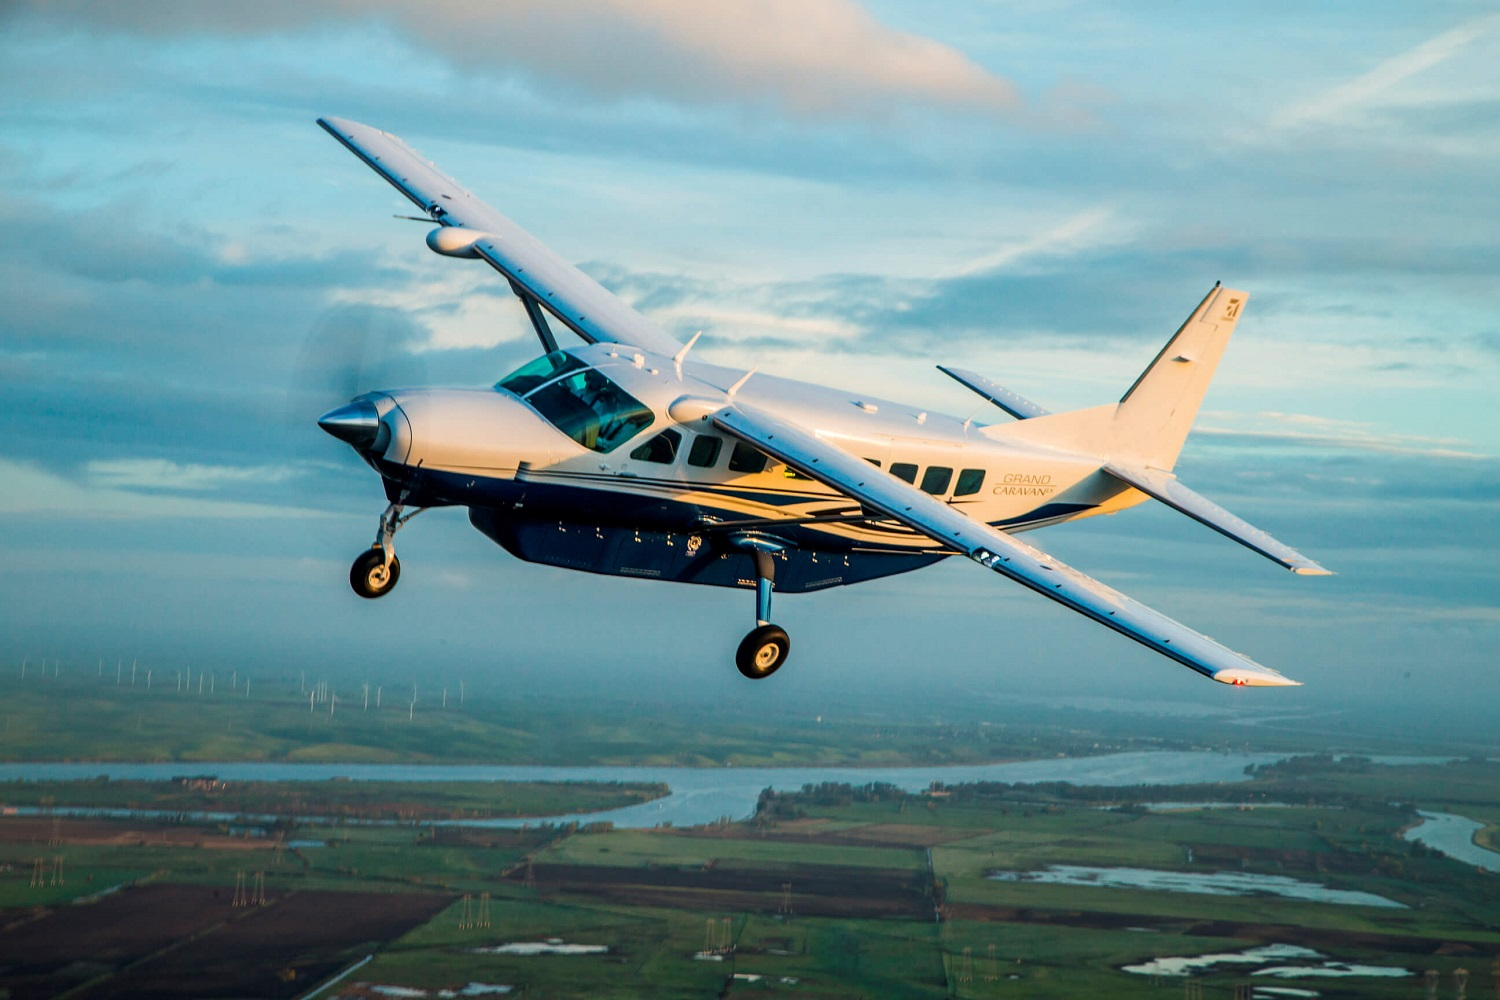 Rwandan Air Force Acquires Textron C-208 EX Aircraft